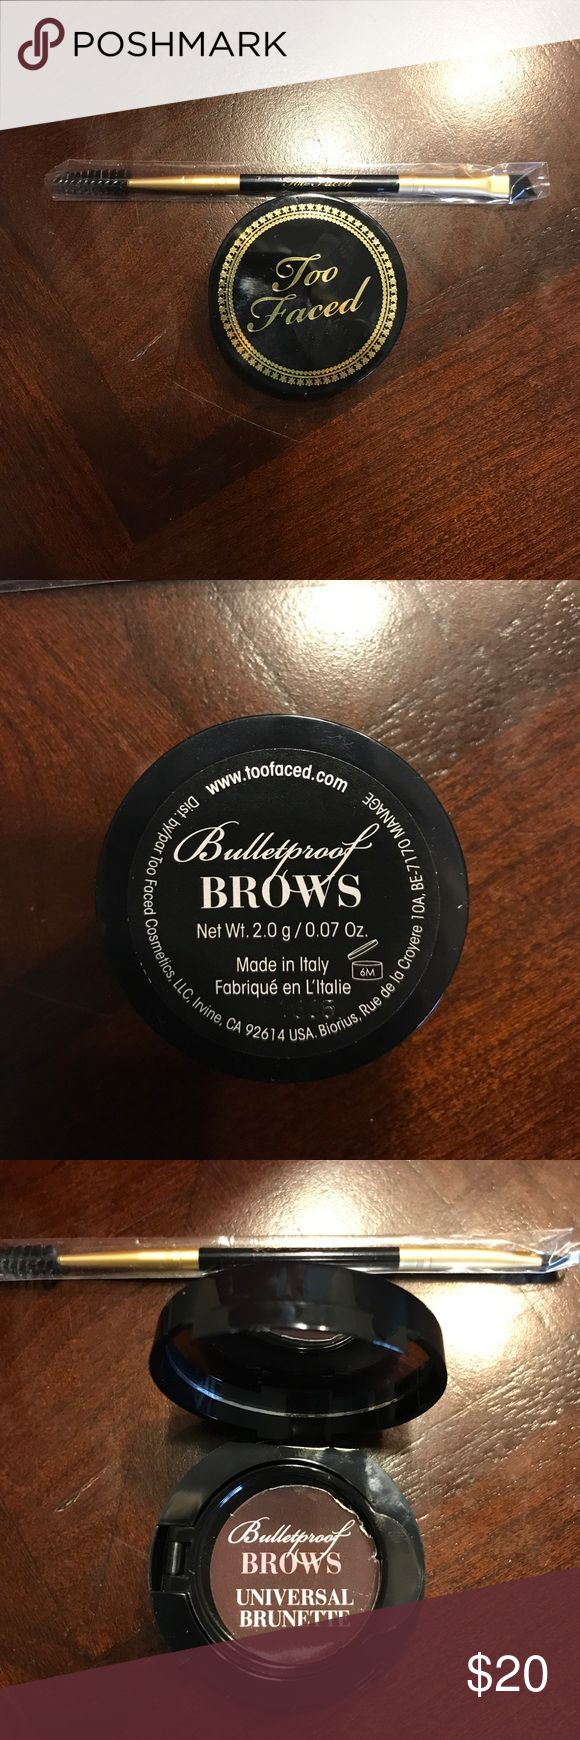 Too Faced Bulletproof Brows with Brush Brand New, Never Used Too Faced bulletproof Brows in Universal Brown. Includes a new, not used Too Faced brush as well. Too Faced Makeup Eyebrow Filler